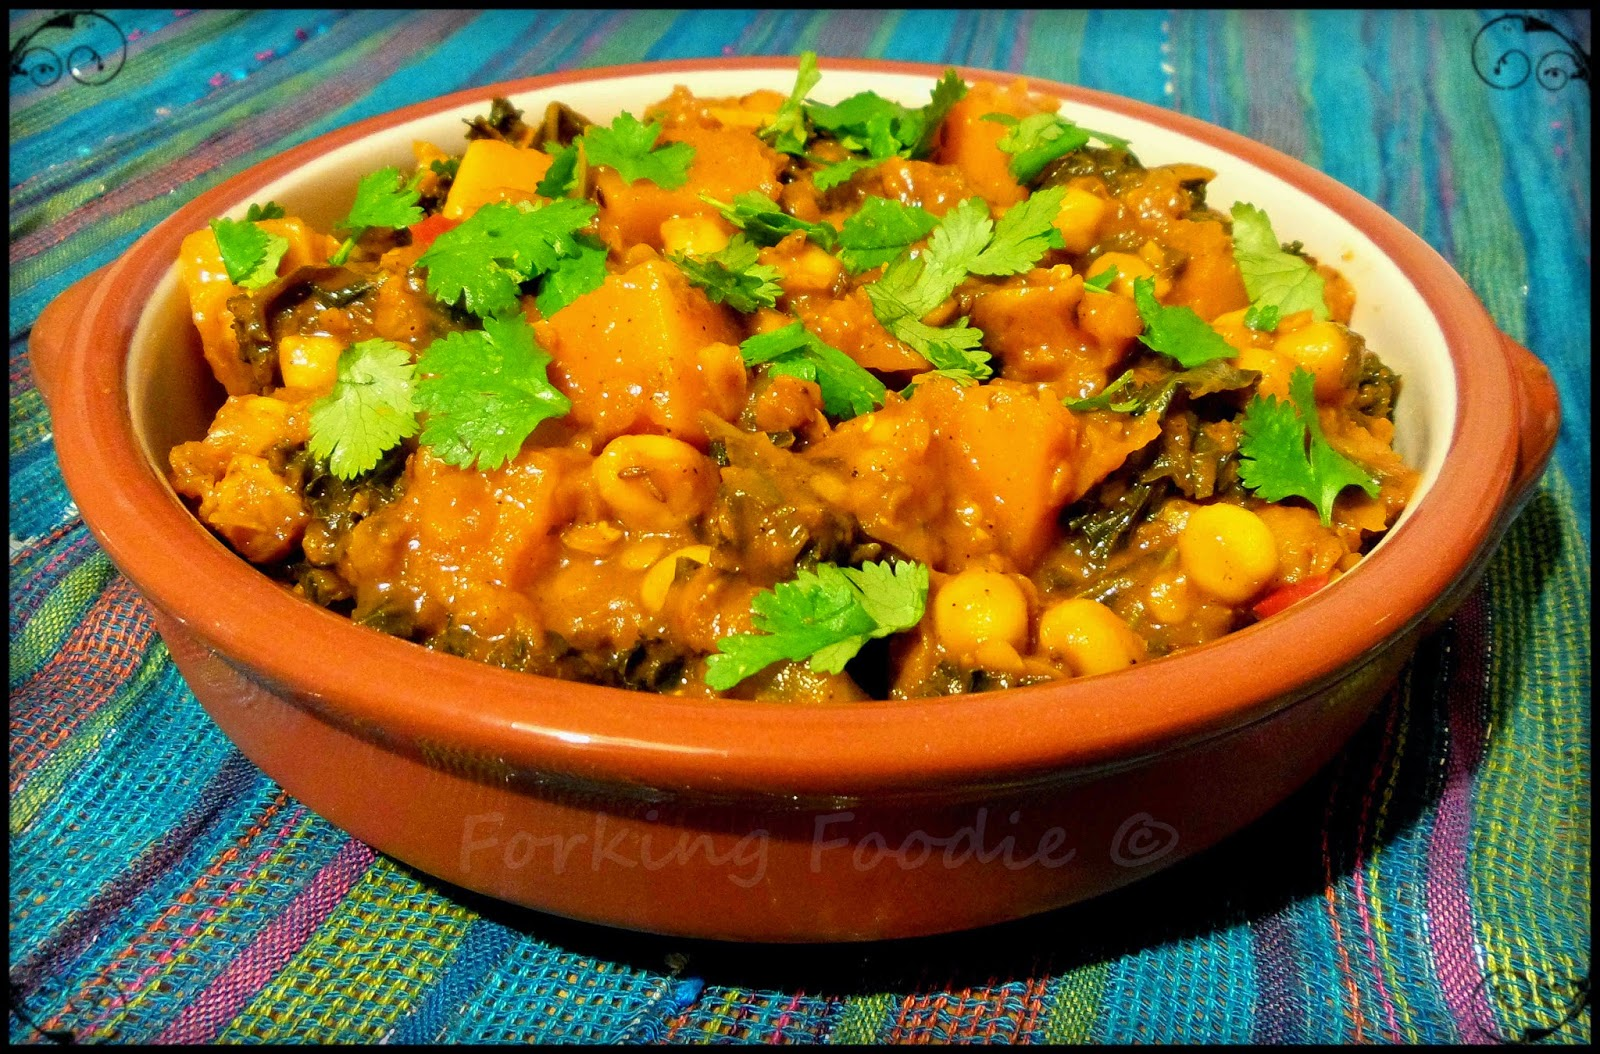 Moroccan Spiced Superfood Stew